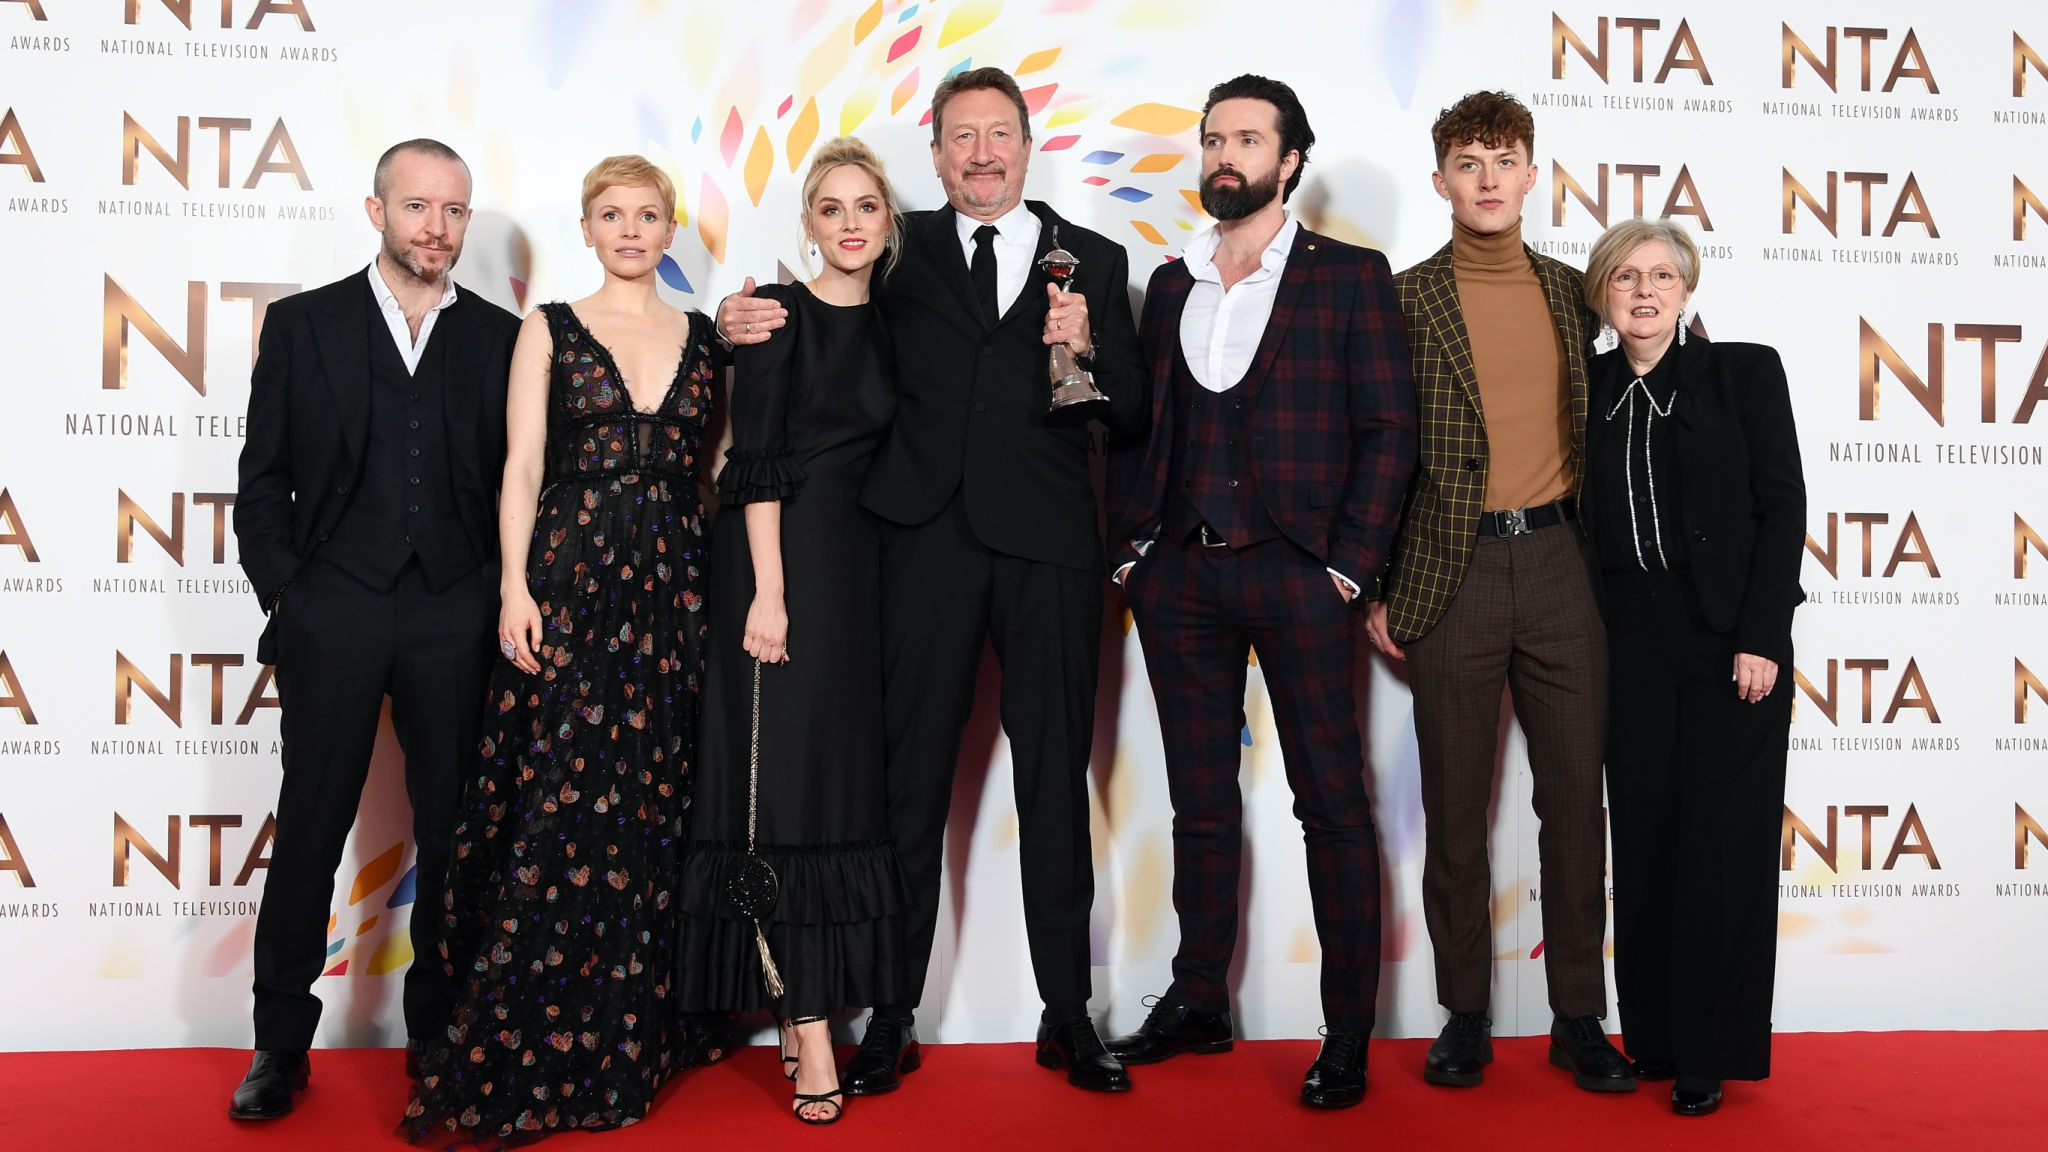 Peaky Blinders won the best drama award